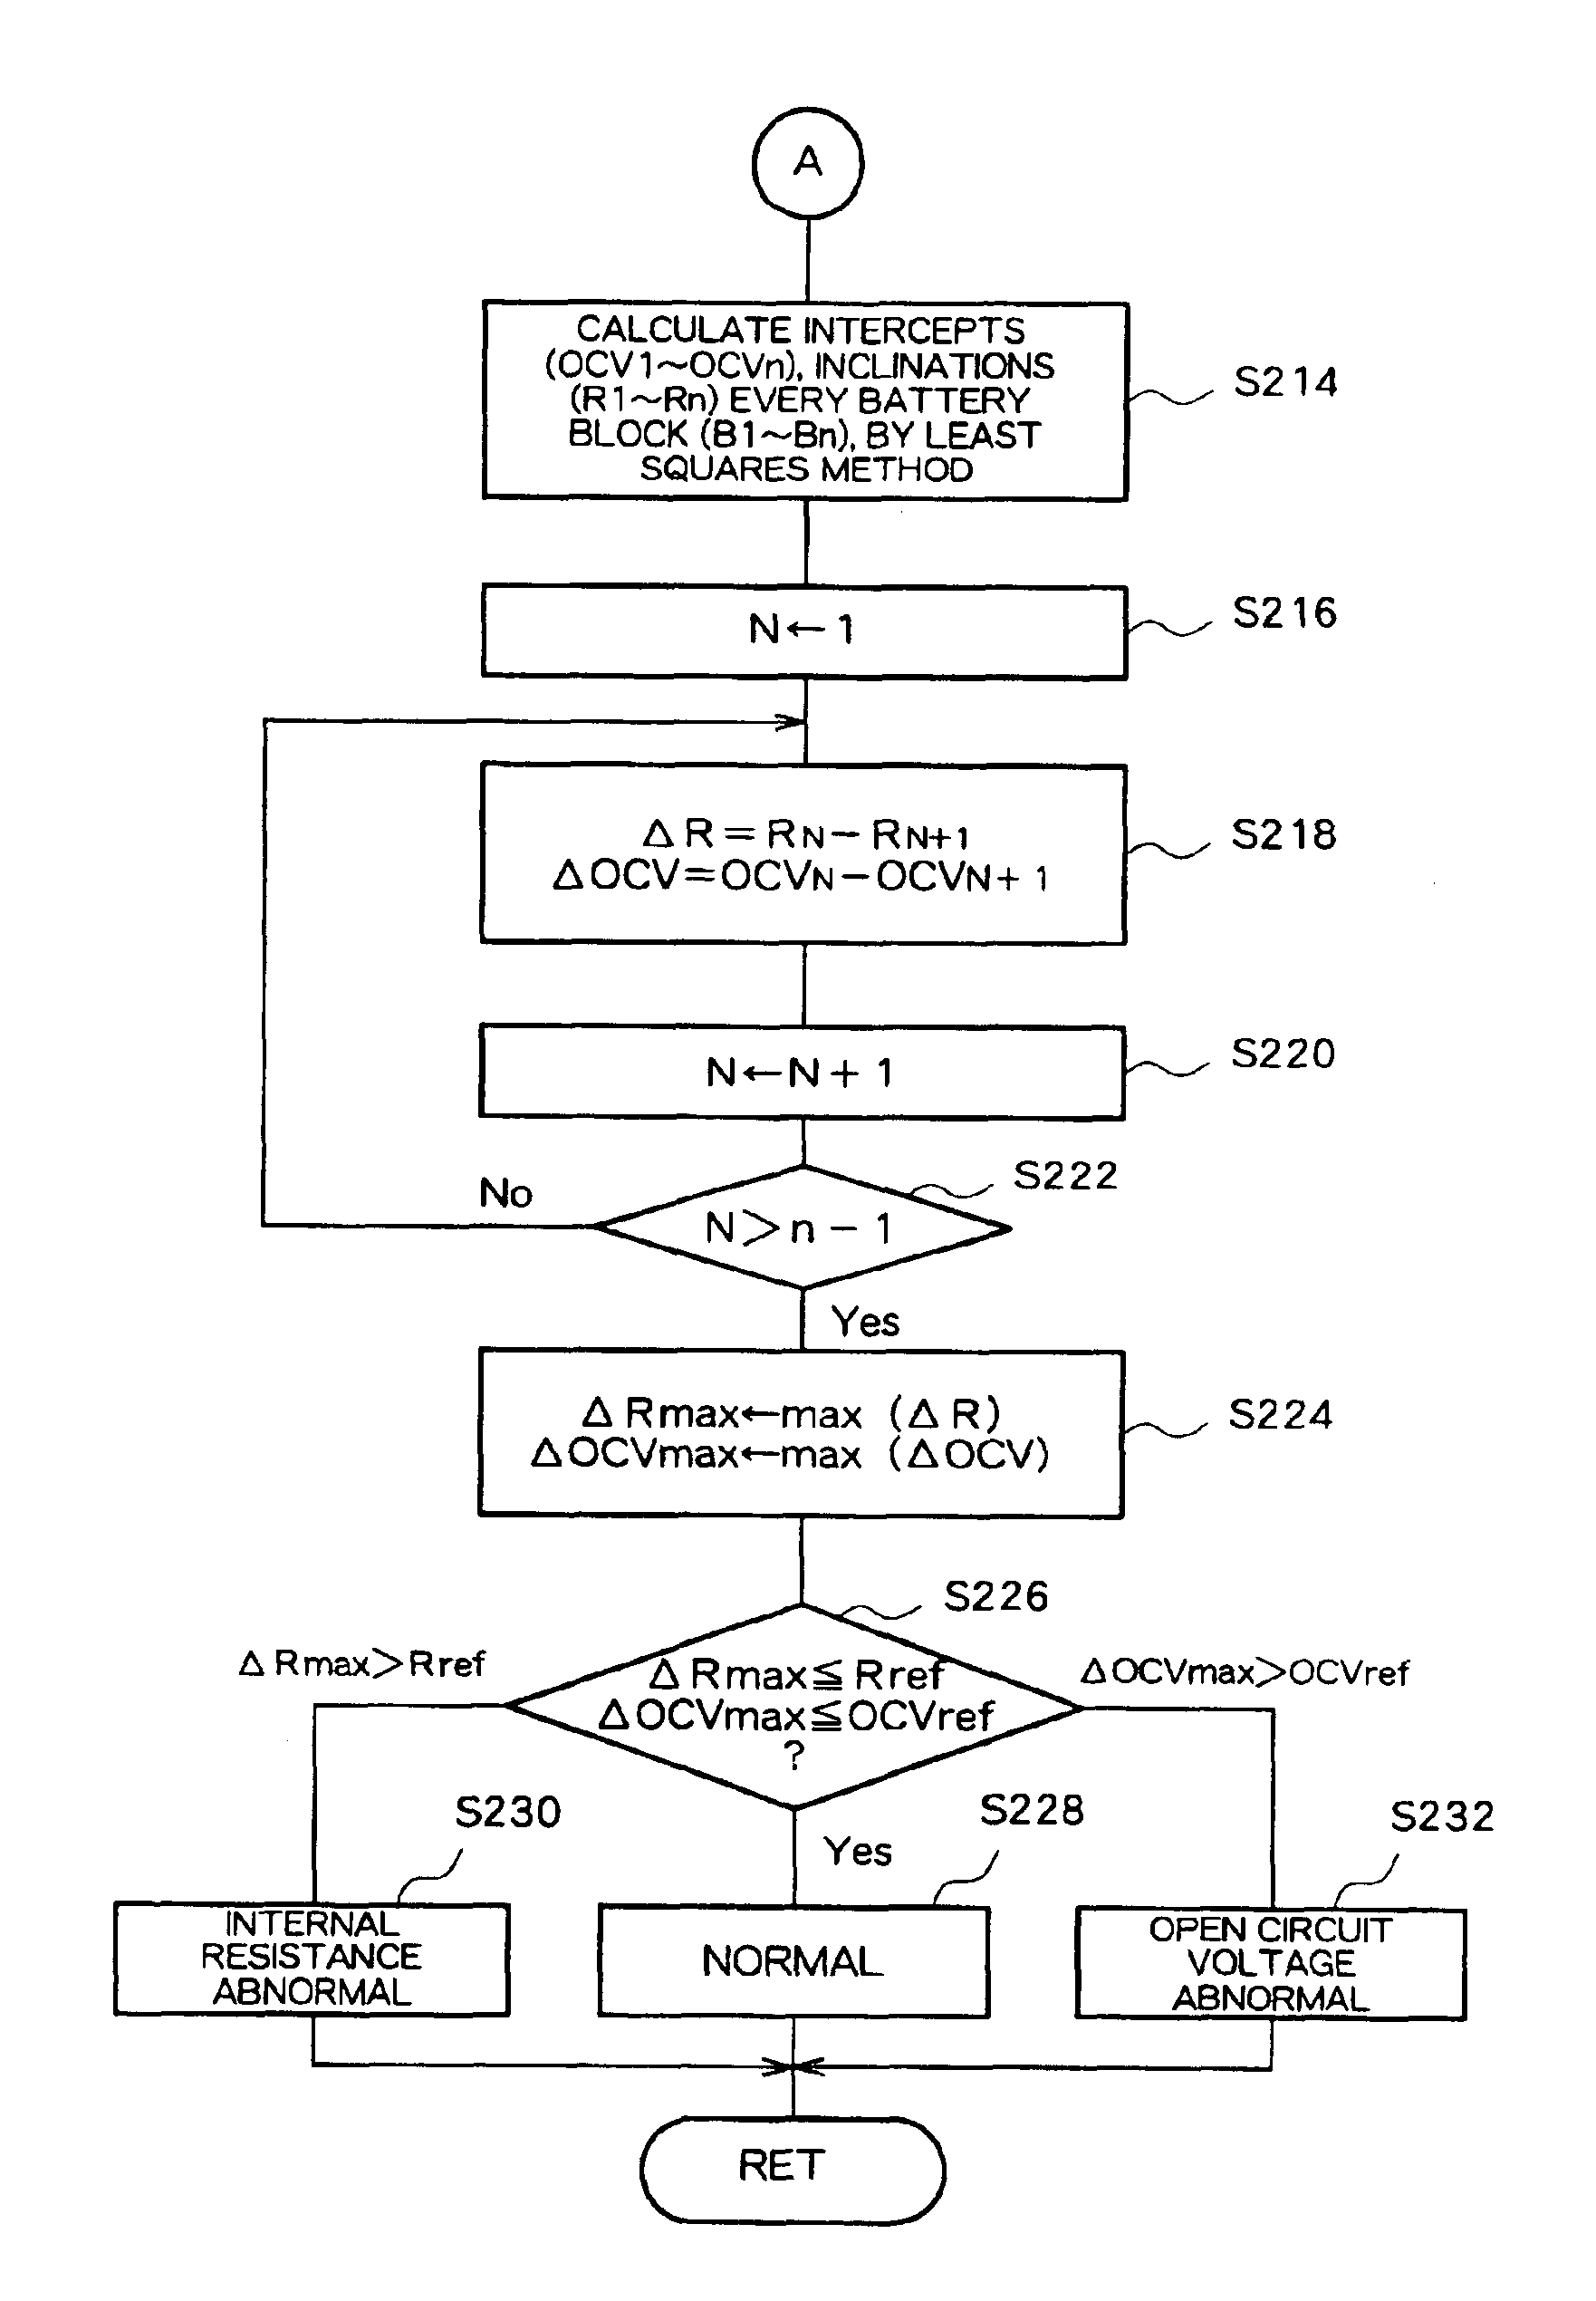 Brevet Us7129707 Apparatus For Judging State Of Assembled Battery Open Circuit Resistance Patent Drawing